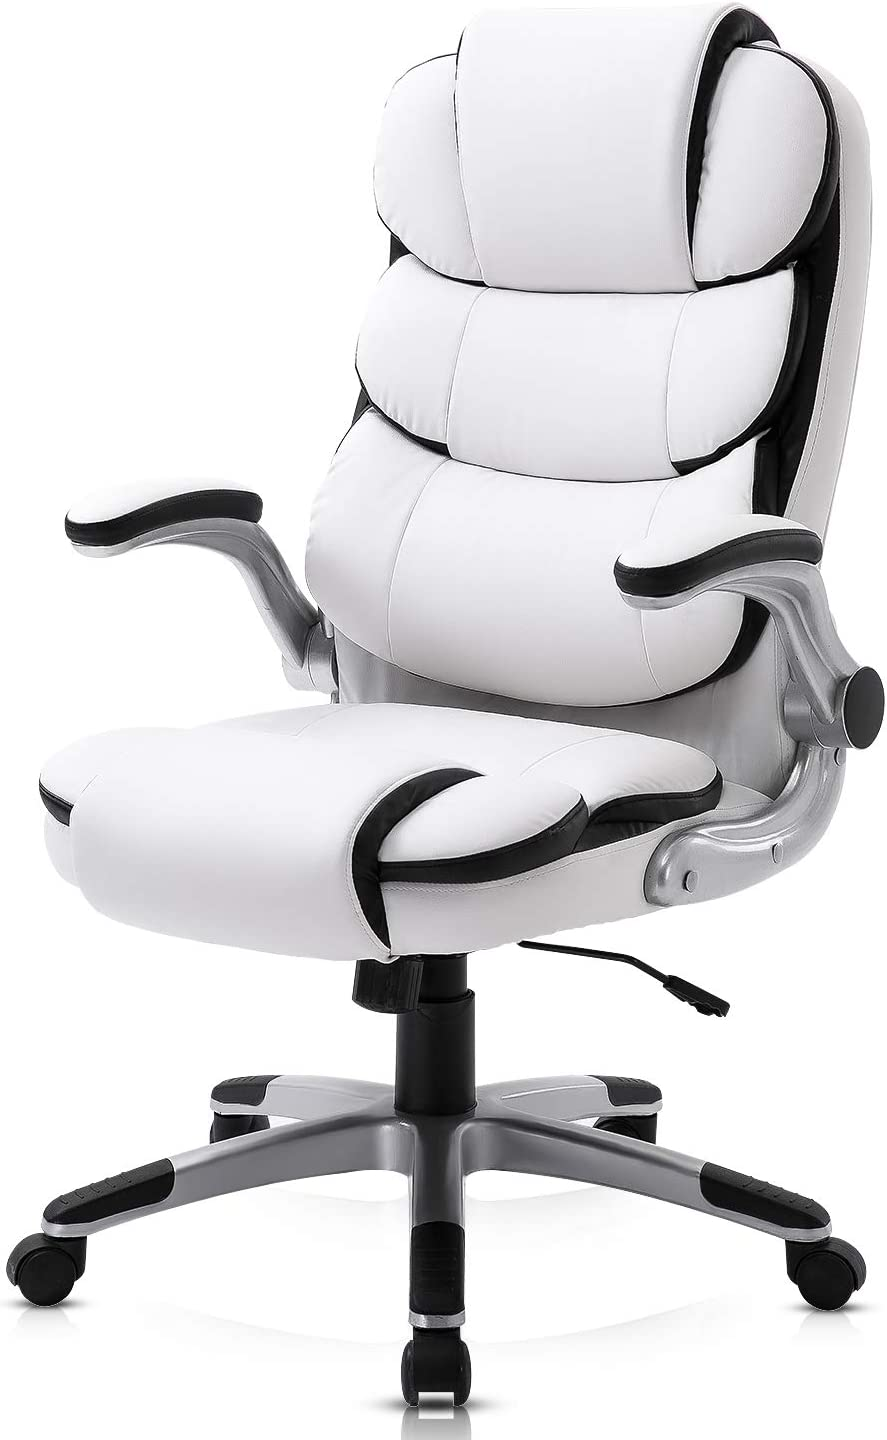 Amazon Com B2c2b High Back Ergonomic Home Office Chair White Leather Computer Executive Desk Chair Modern Racing Chair Adjustable With Flip Up Arms Lumbar Support 300lbs Office Products